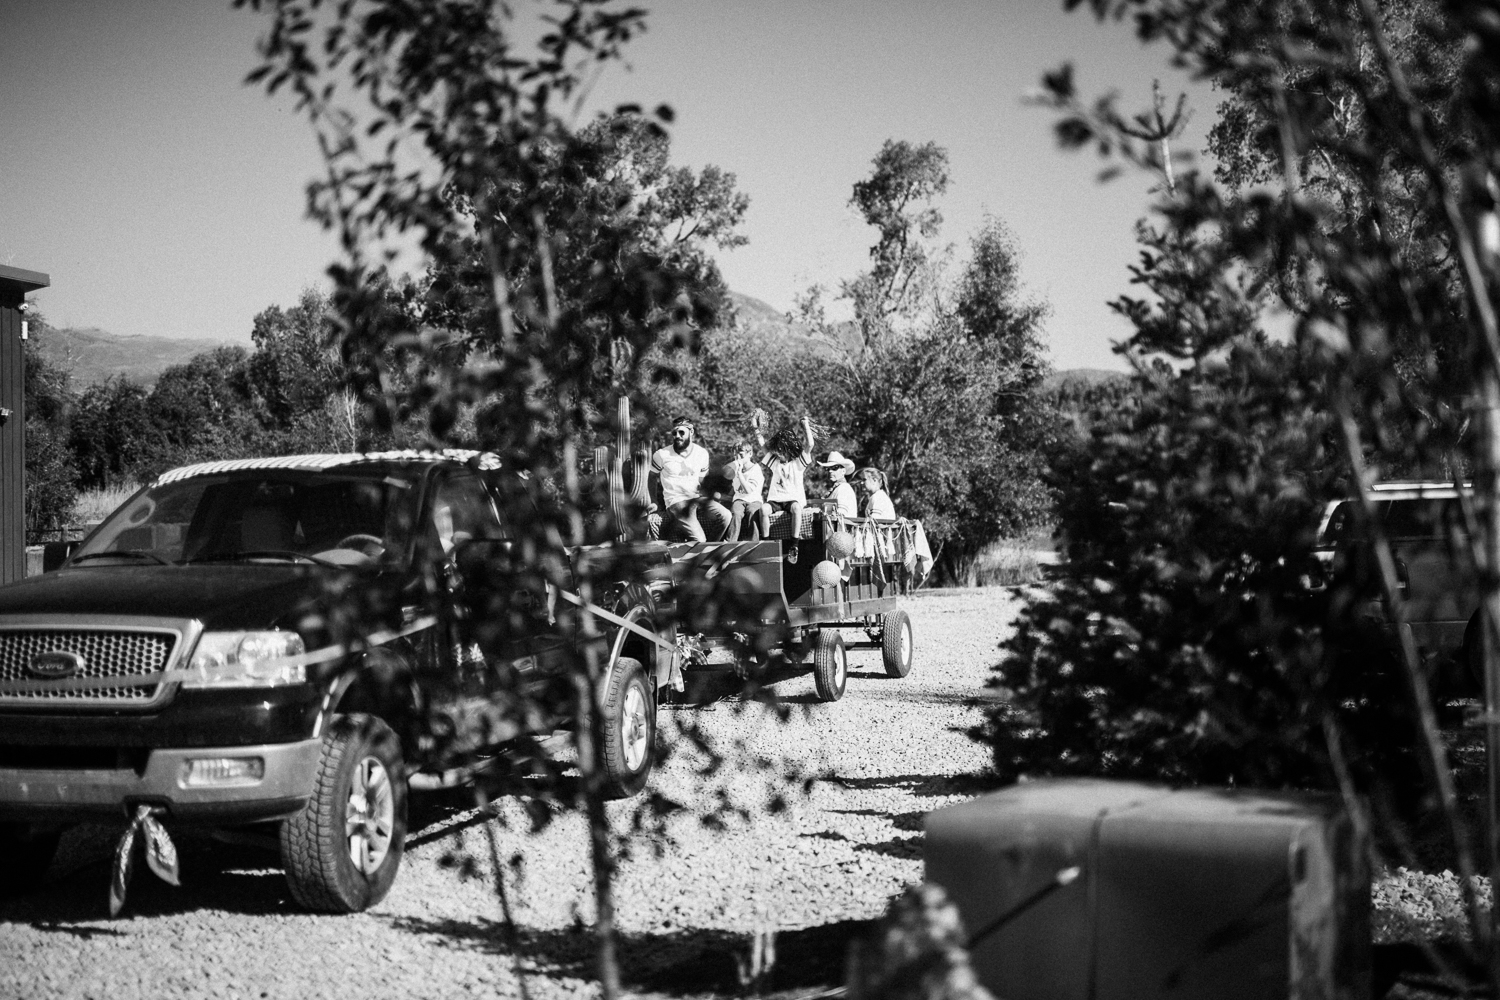 documentary-photo-of-float-at-legacy-ranch-in-heber-utah